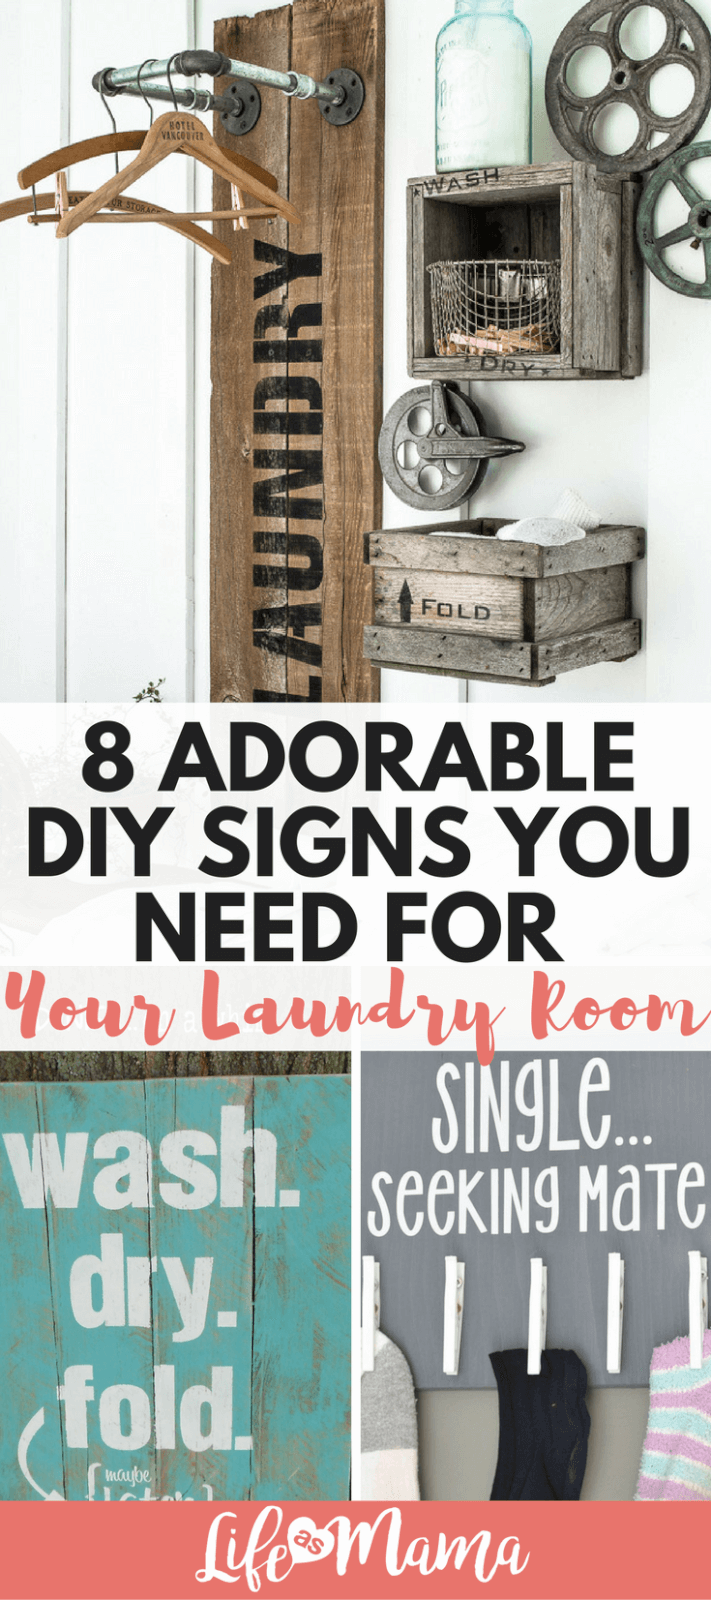 Laundry Signs 8 Adorable Diy Signs You Need For Your Laundry Room